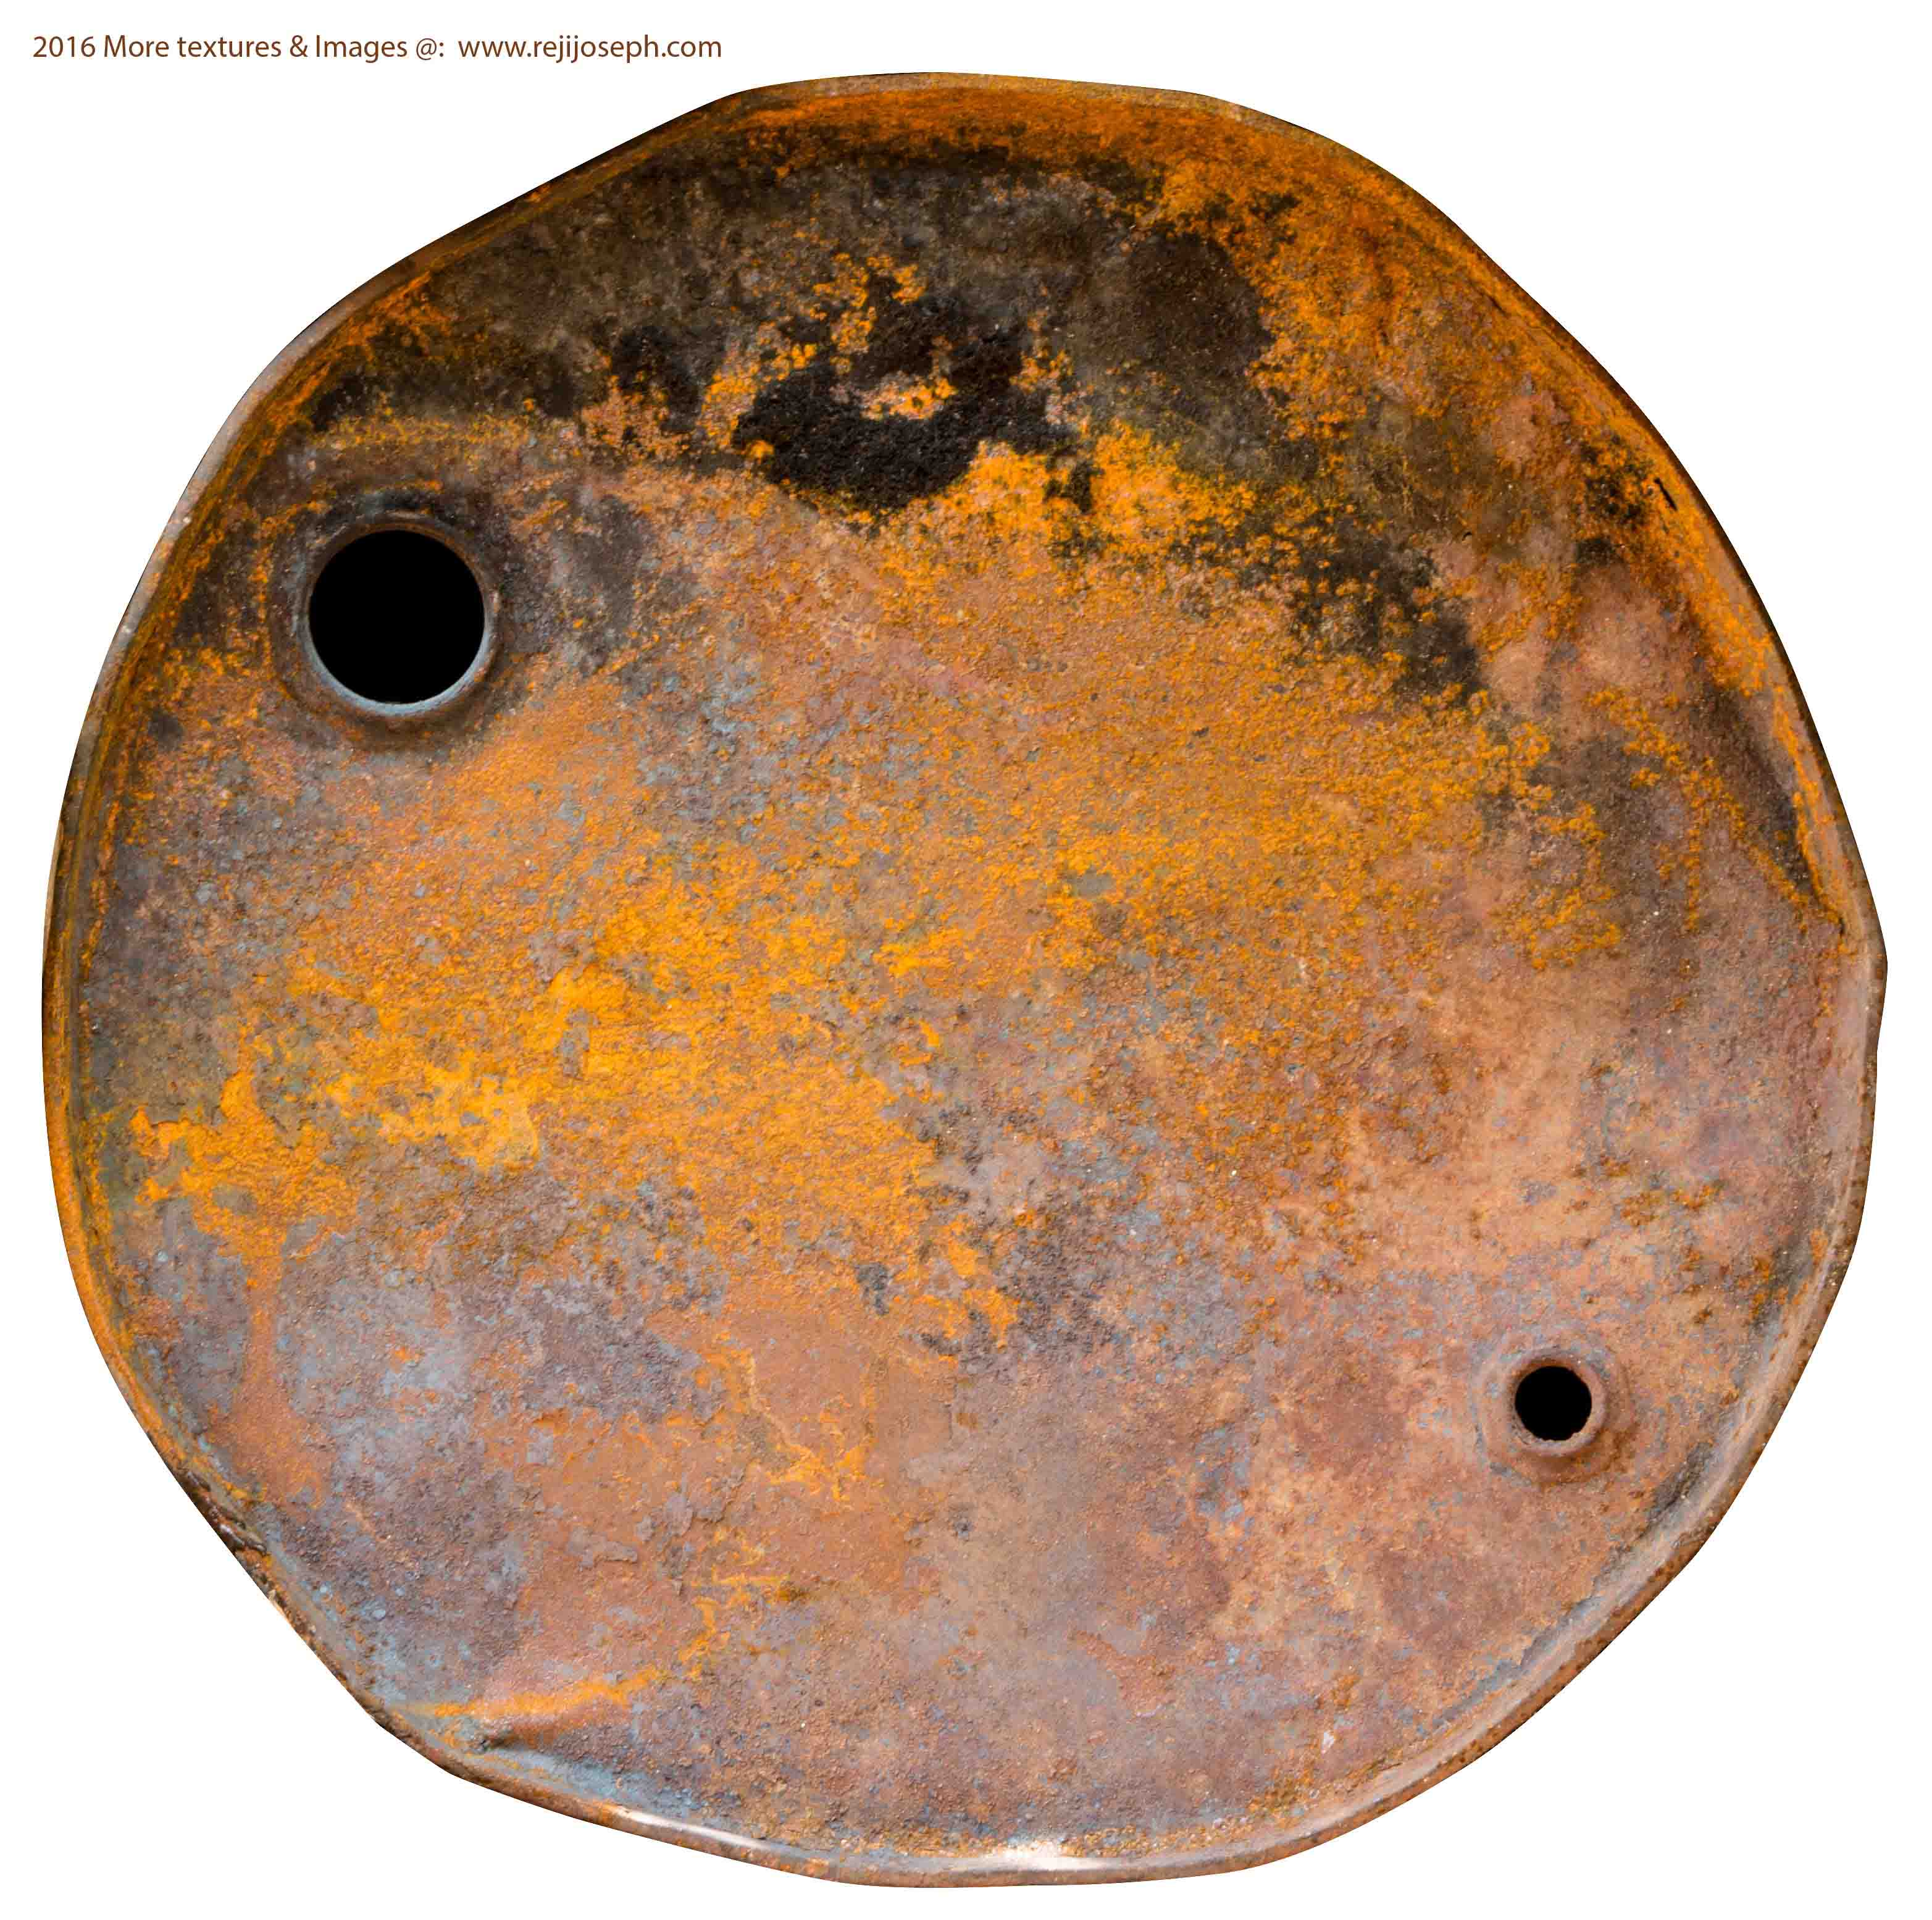 Rusty metal Oil can texture 00020